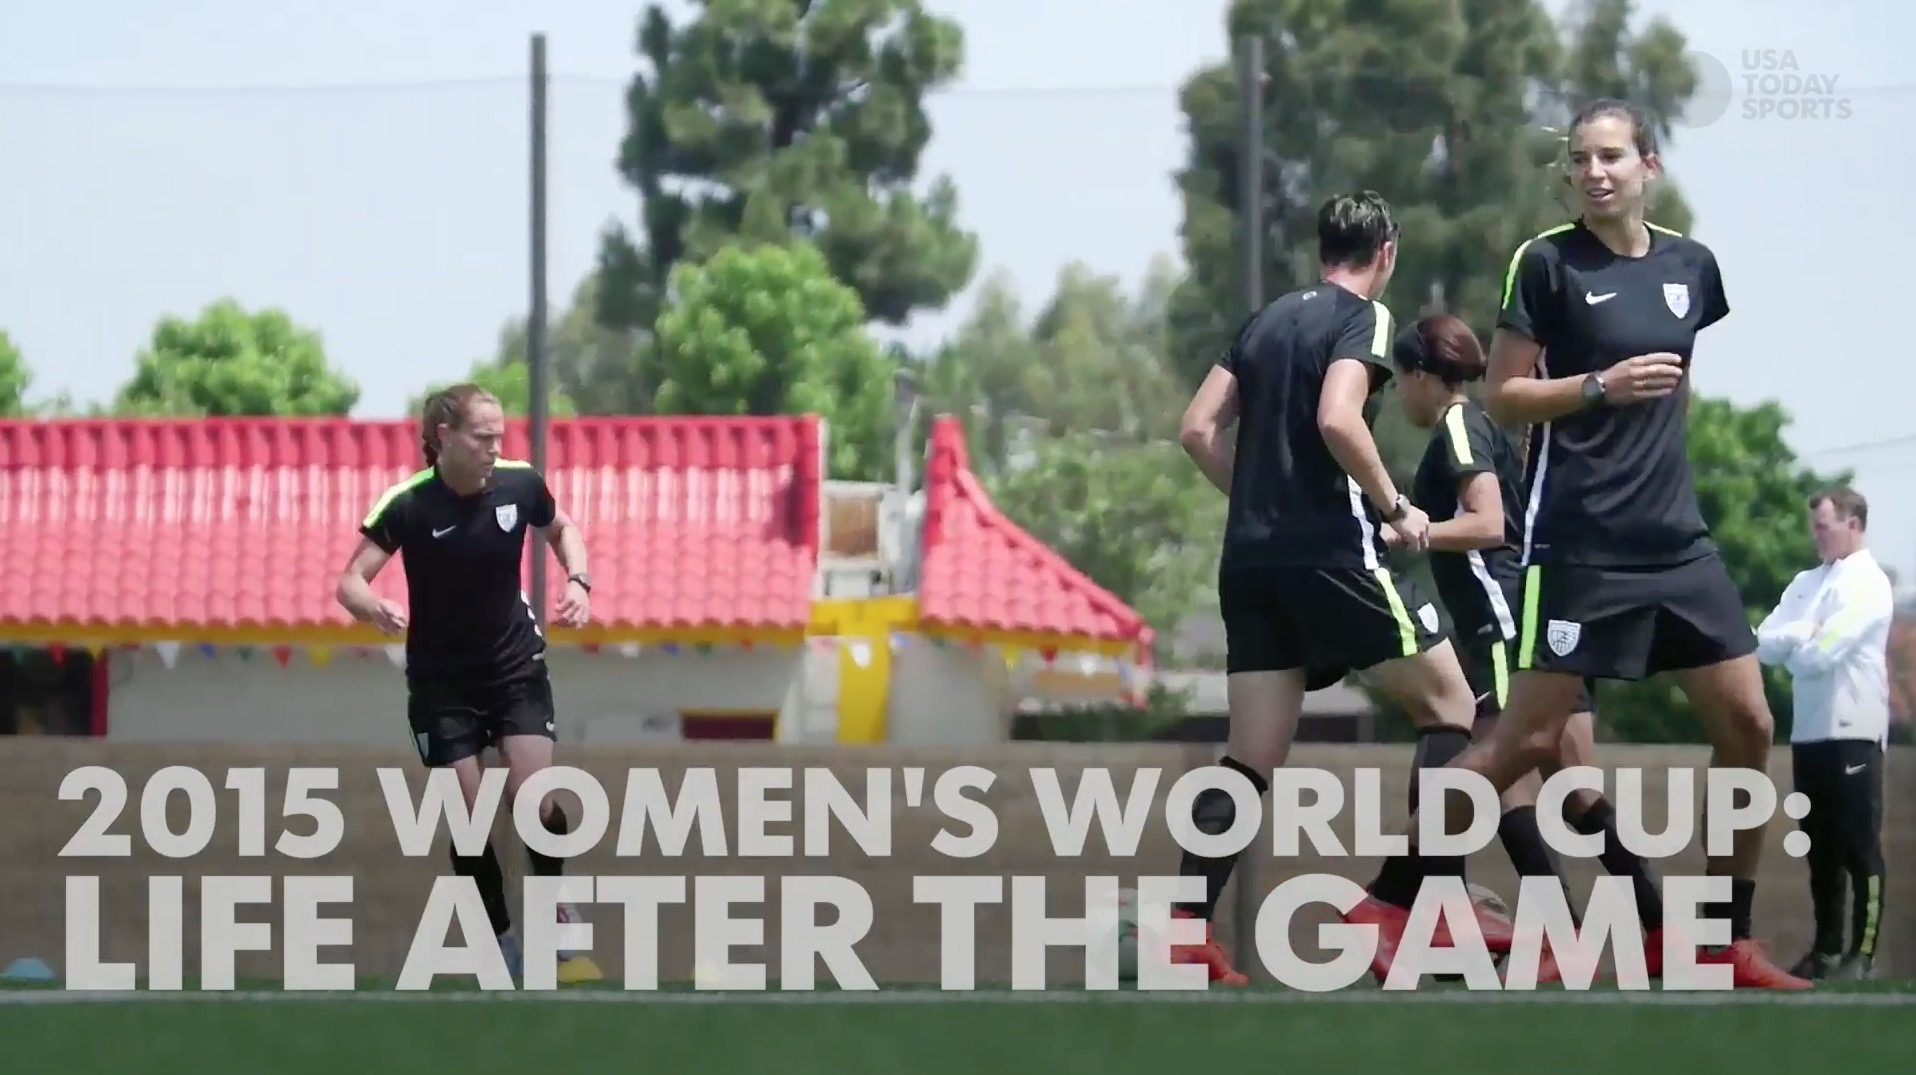 Life after the game: U.S. women's soccer